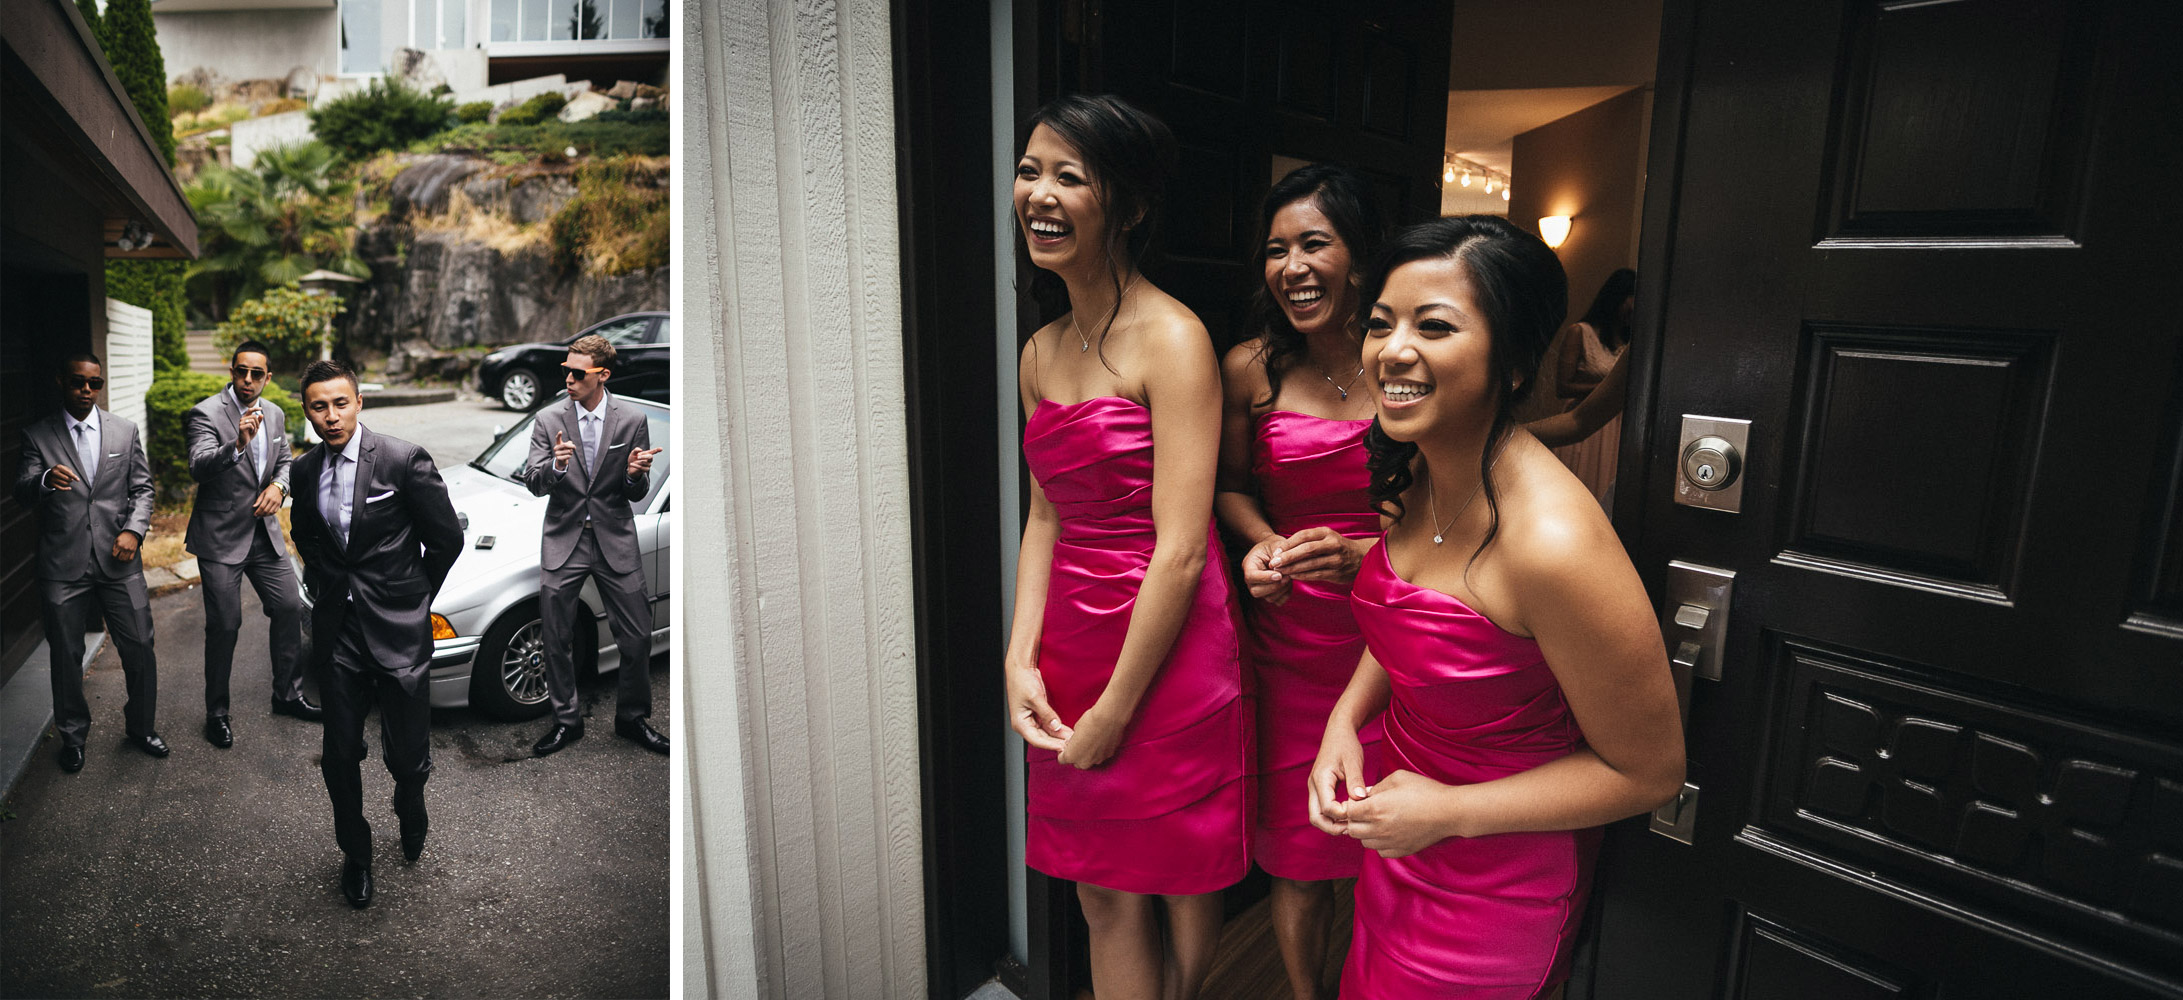 west vancouver photography wedding door games